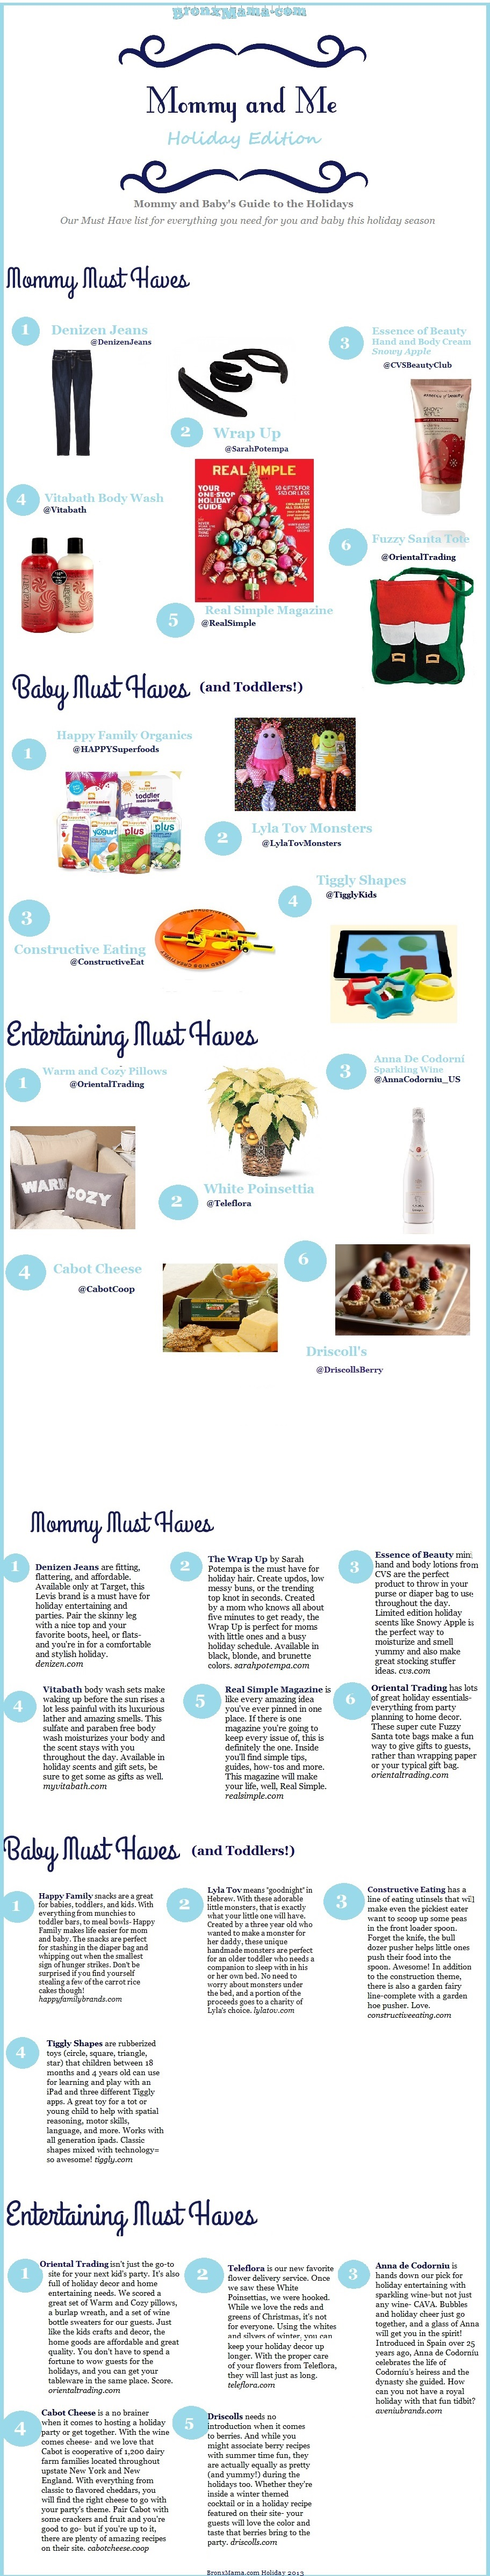 Mommy and Me Holiday Guide JPEG Revised